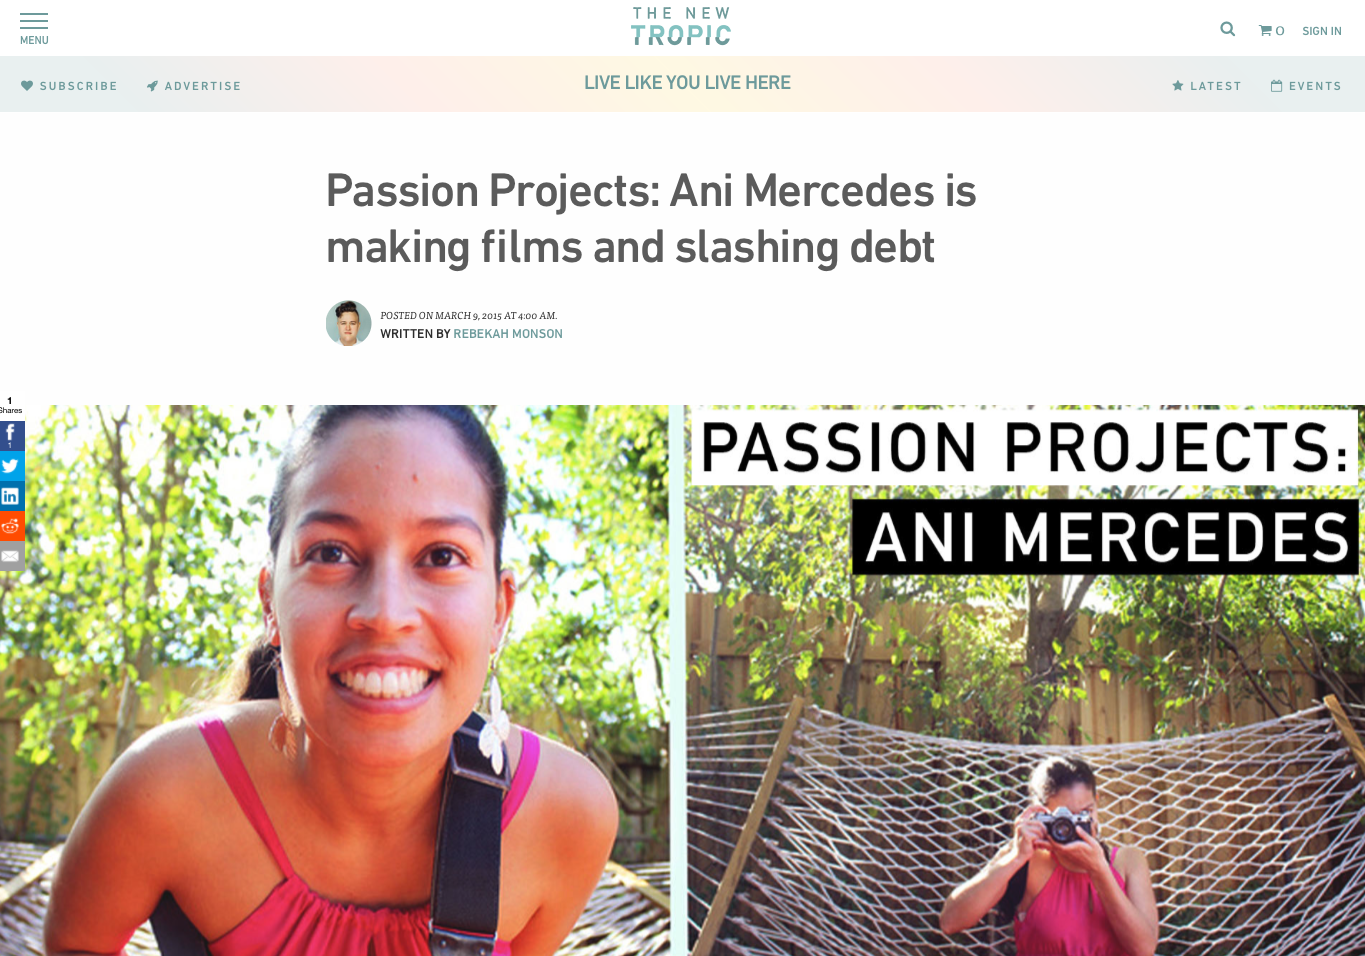 Ani Mercedes: Passion Projects  The New Tropic